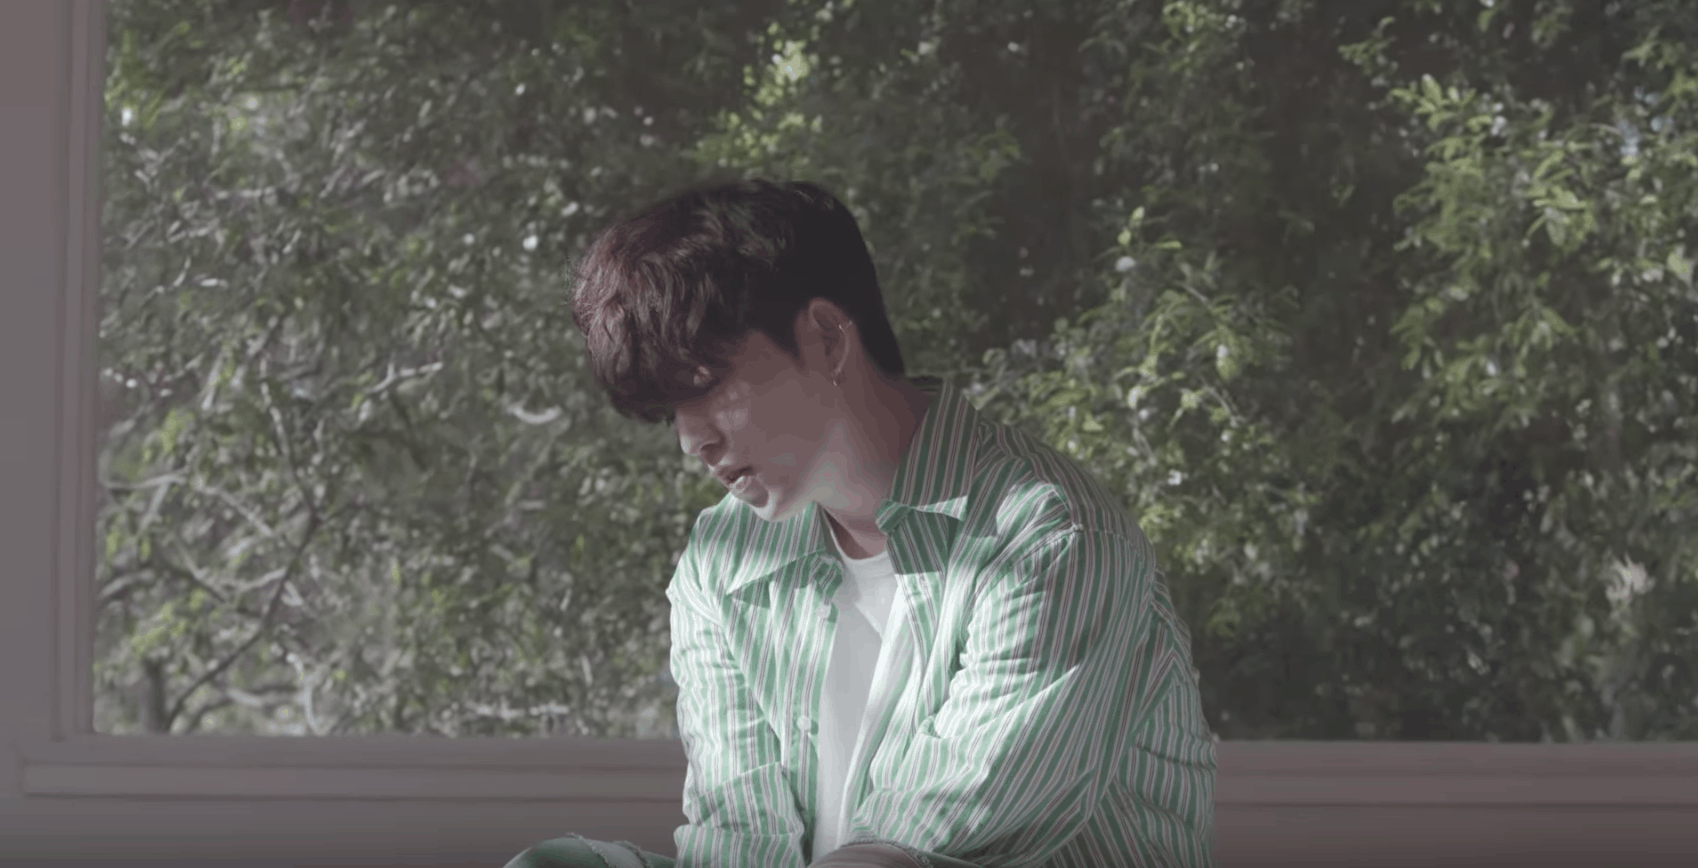 Seventeen kpop fashion: Don't Wanna Cry music video. Member wears green striped shirt in front of a window.